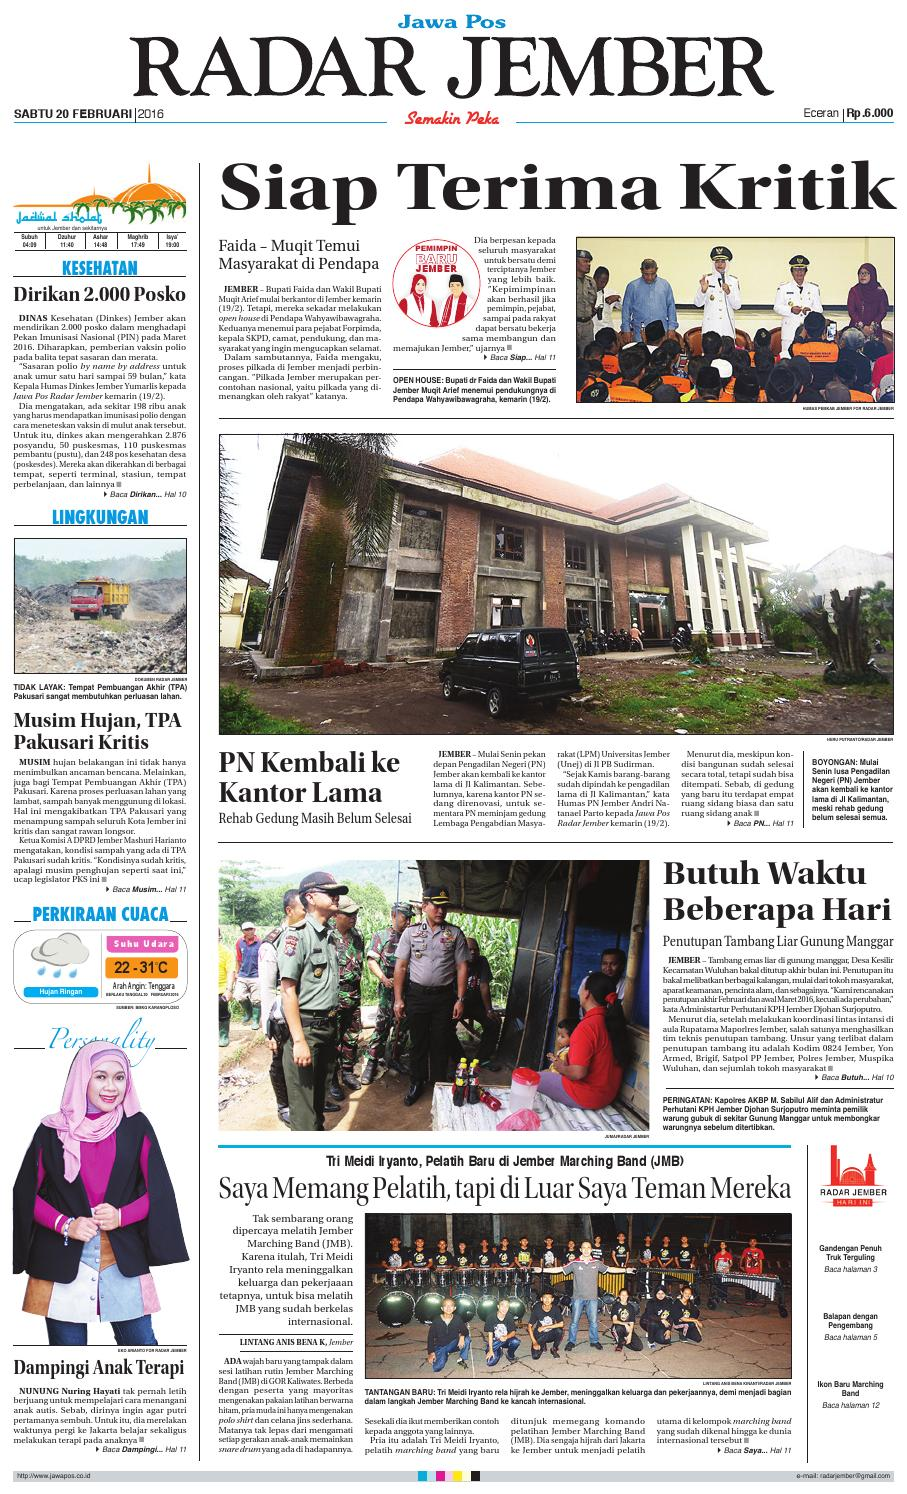 jember 200216 rj by radar jember online issuu